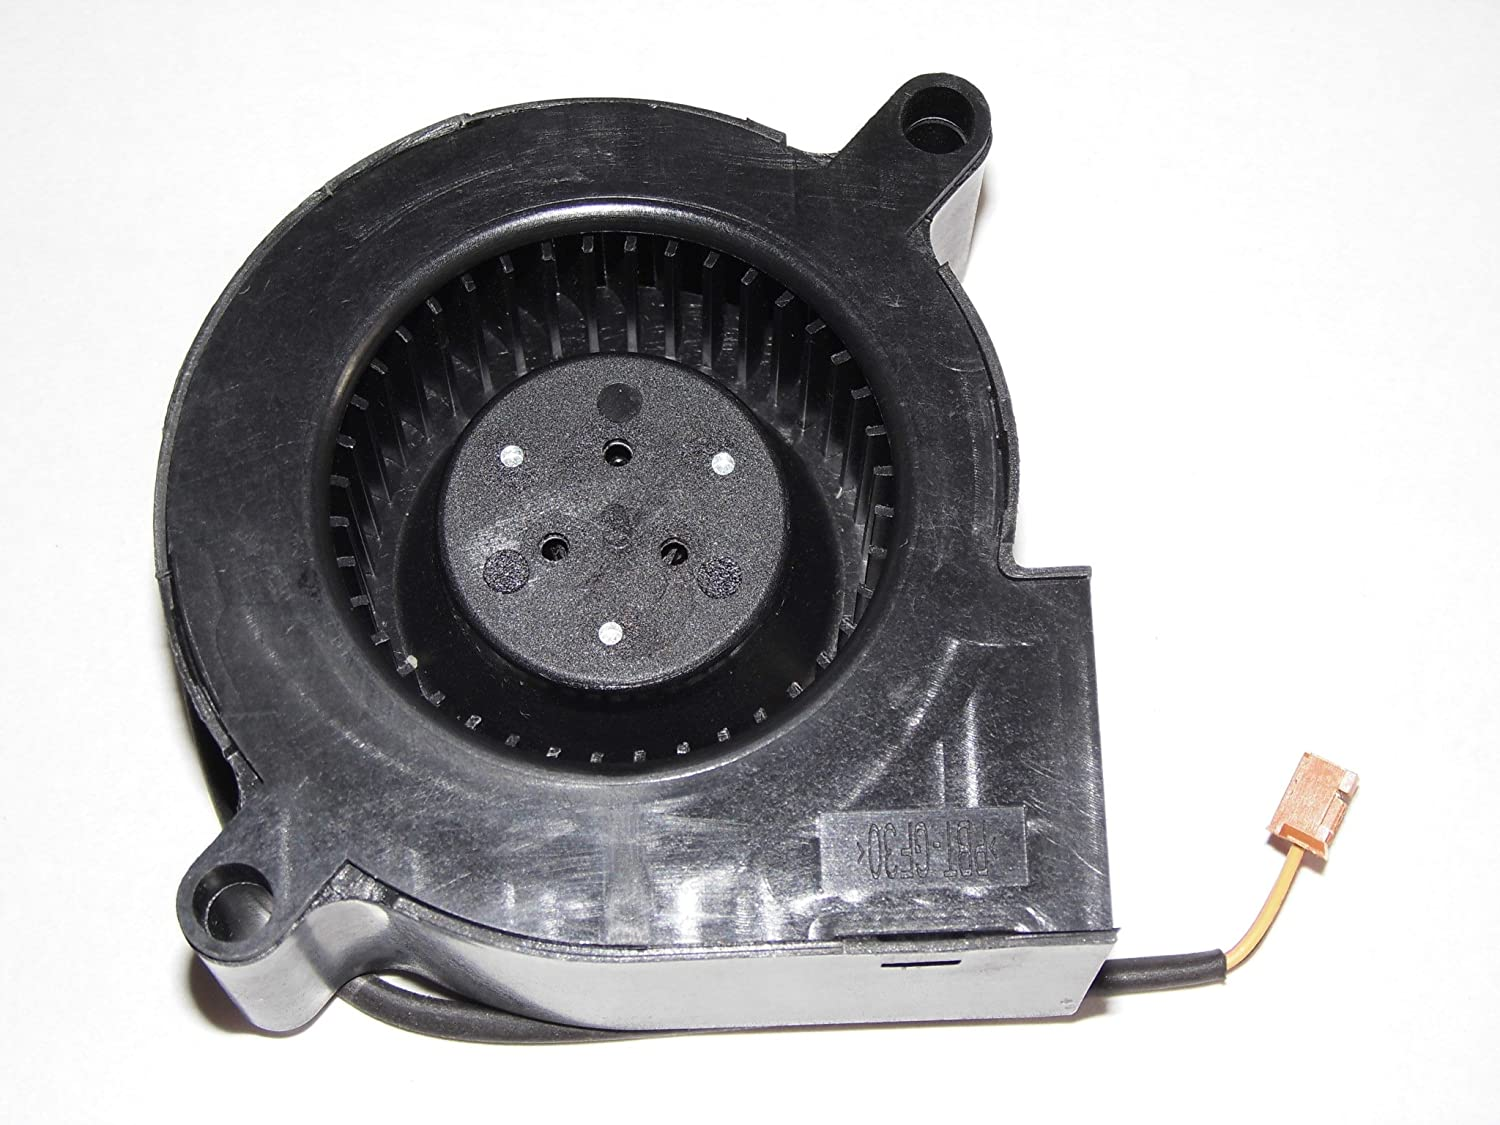 ADDA 6cm AB06012MX250300 OX2V5 12V 0.18A 3Wire DC Blower Fan for BenQ MW814ST Projector fan